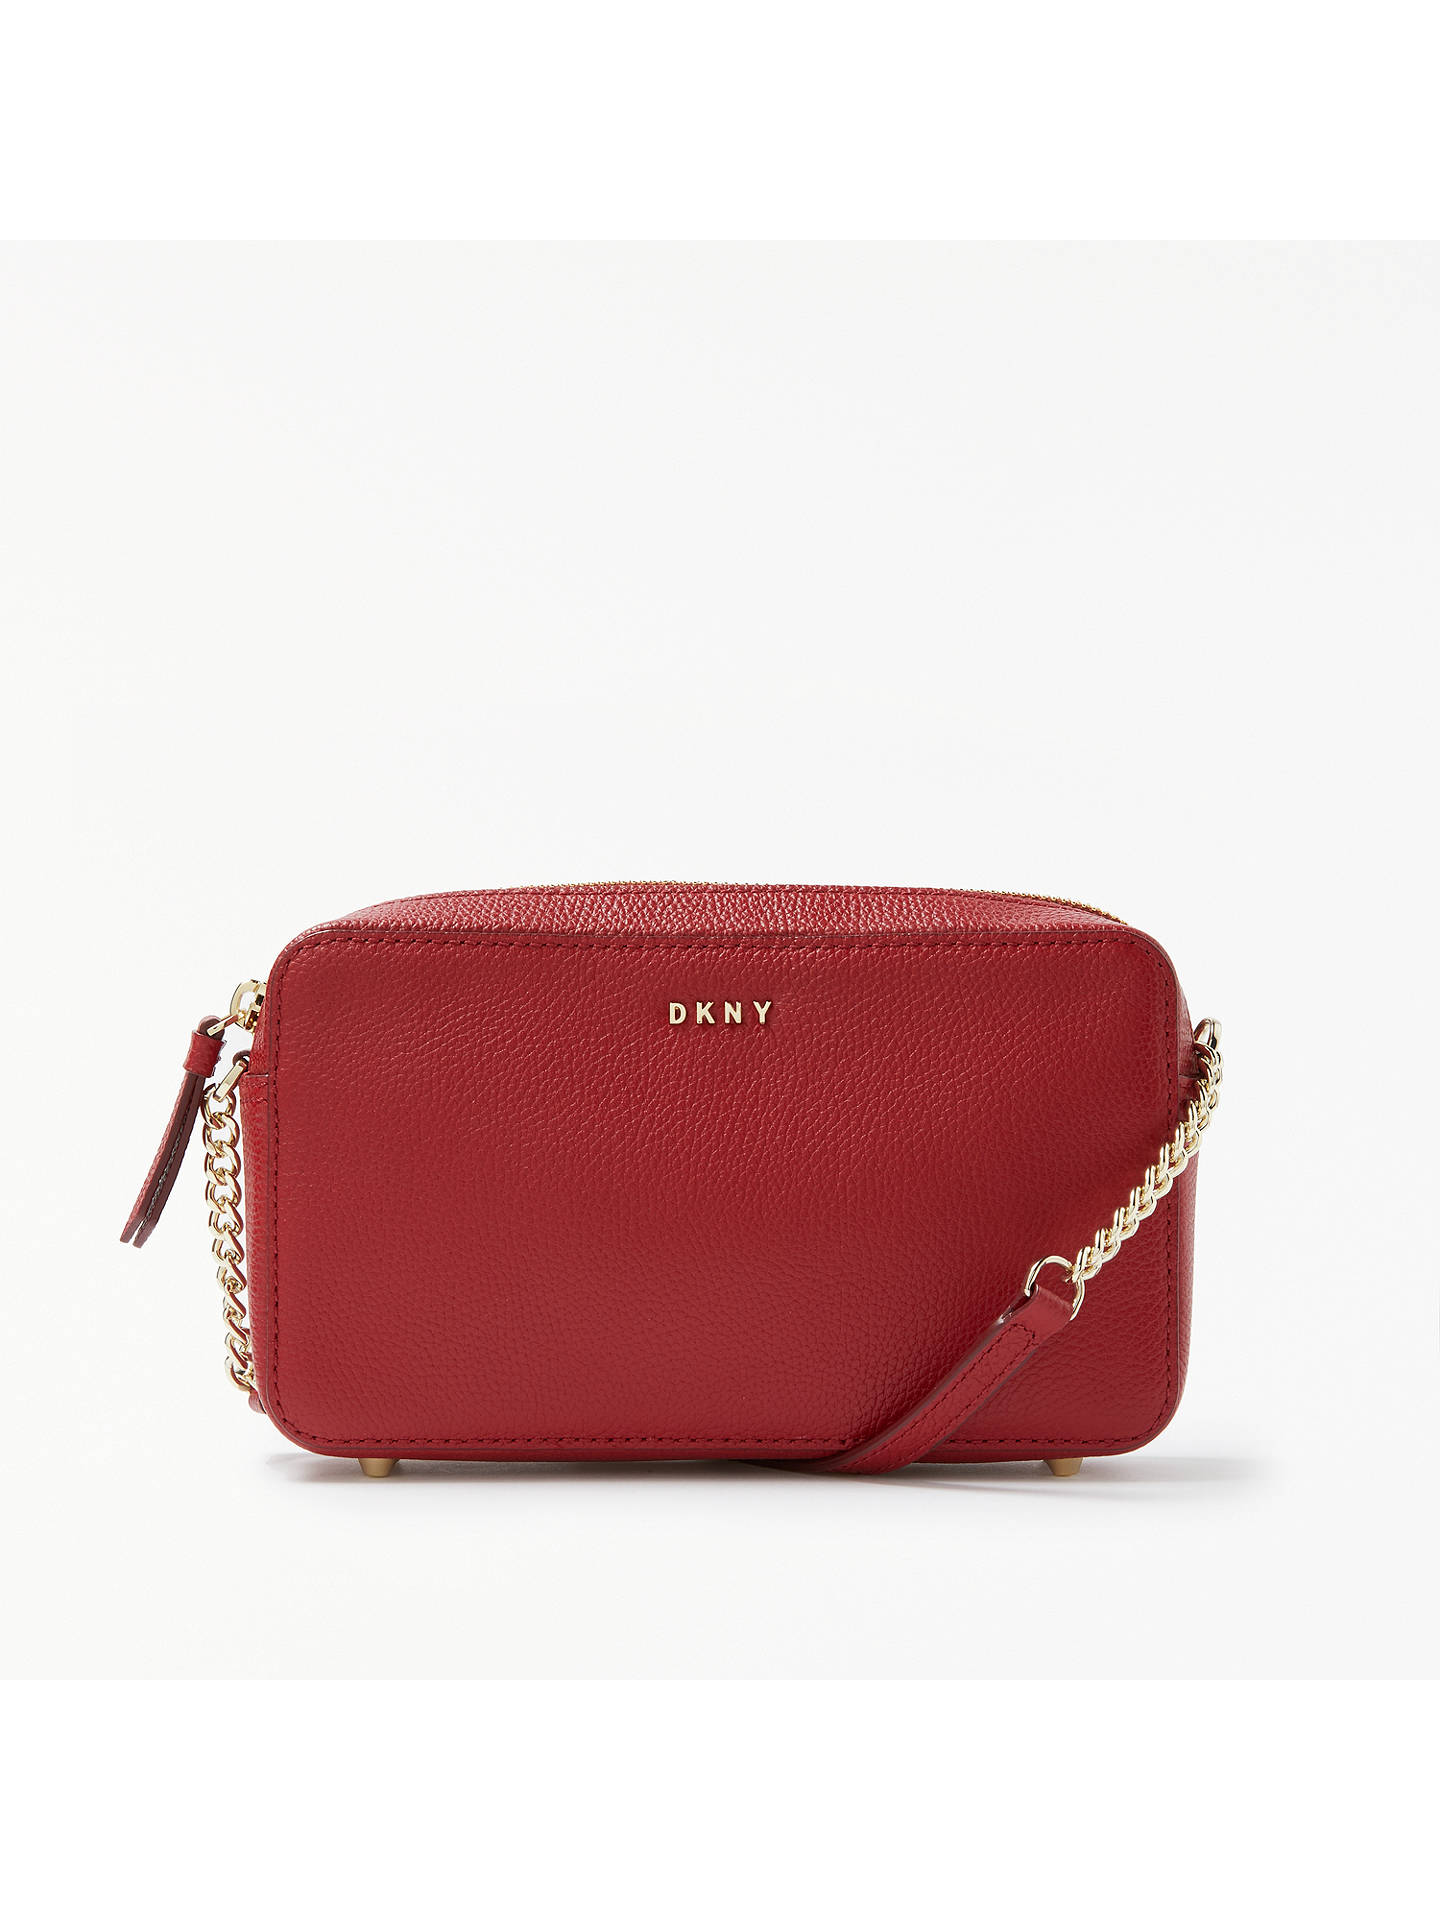 e8091644f9c BuyDKNY Chelsea Pebbled Leather Cross Body Bag, Scarlet Red Online at  johnlewis.com ...